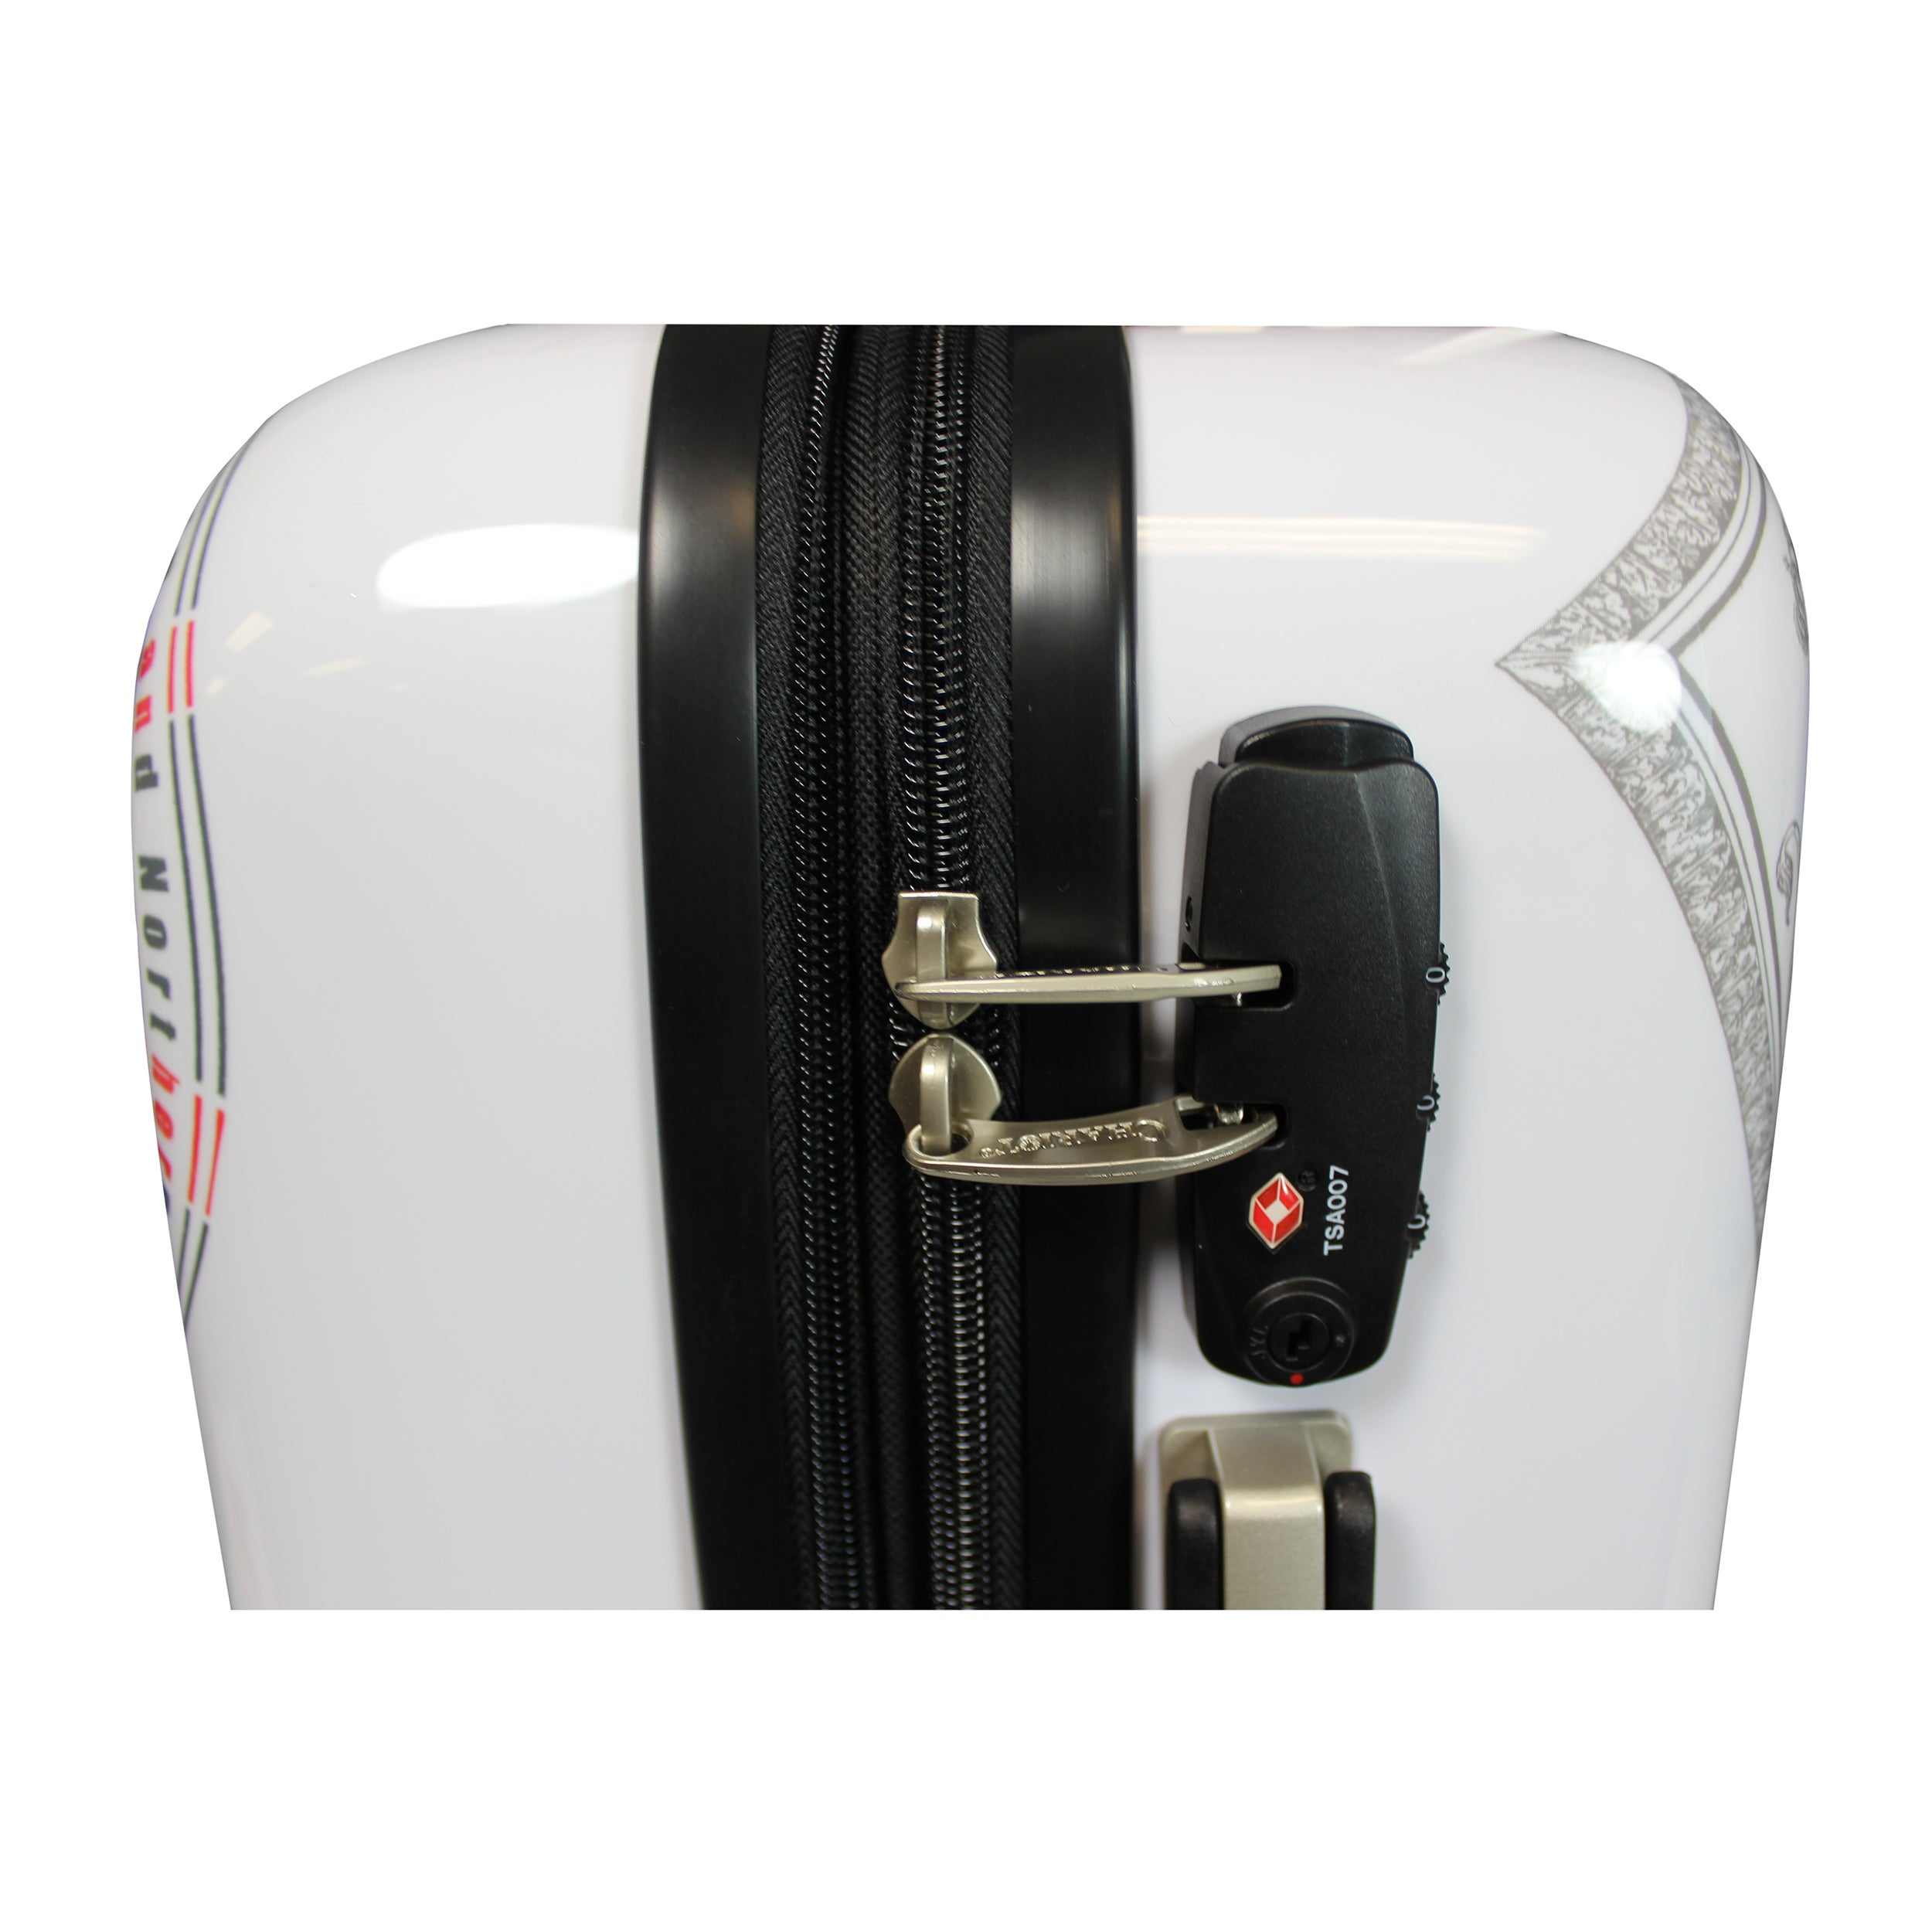 e90fd8e52092 Chariot UK Doggie 20-Inch Hardside Lightweight Upright Spinner Carry-On  Suitcase